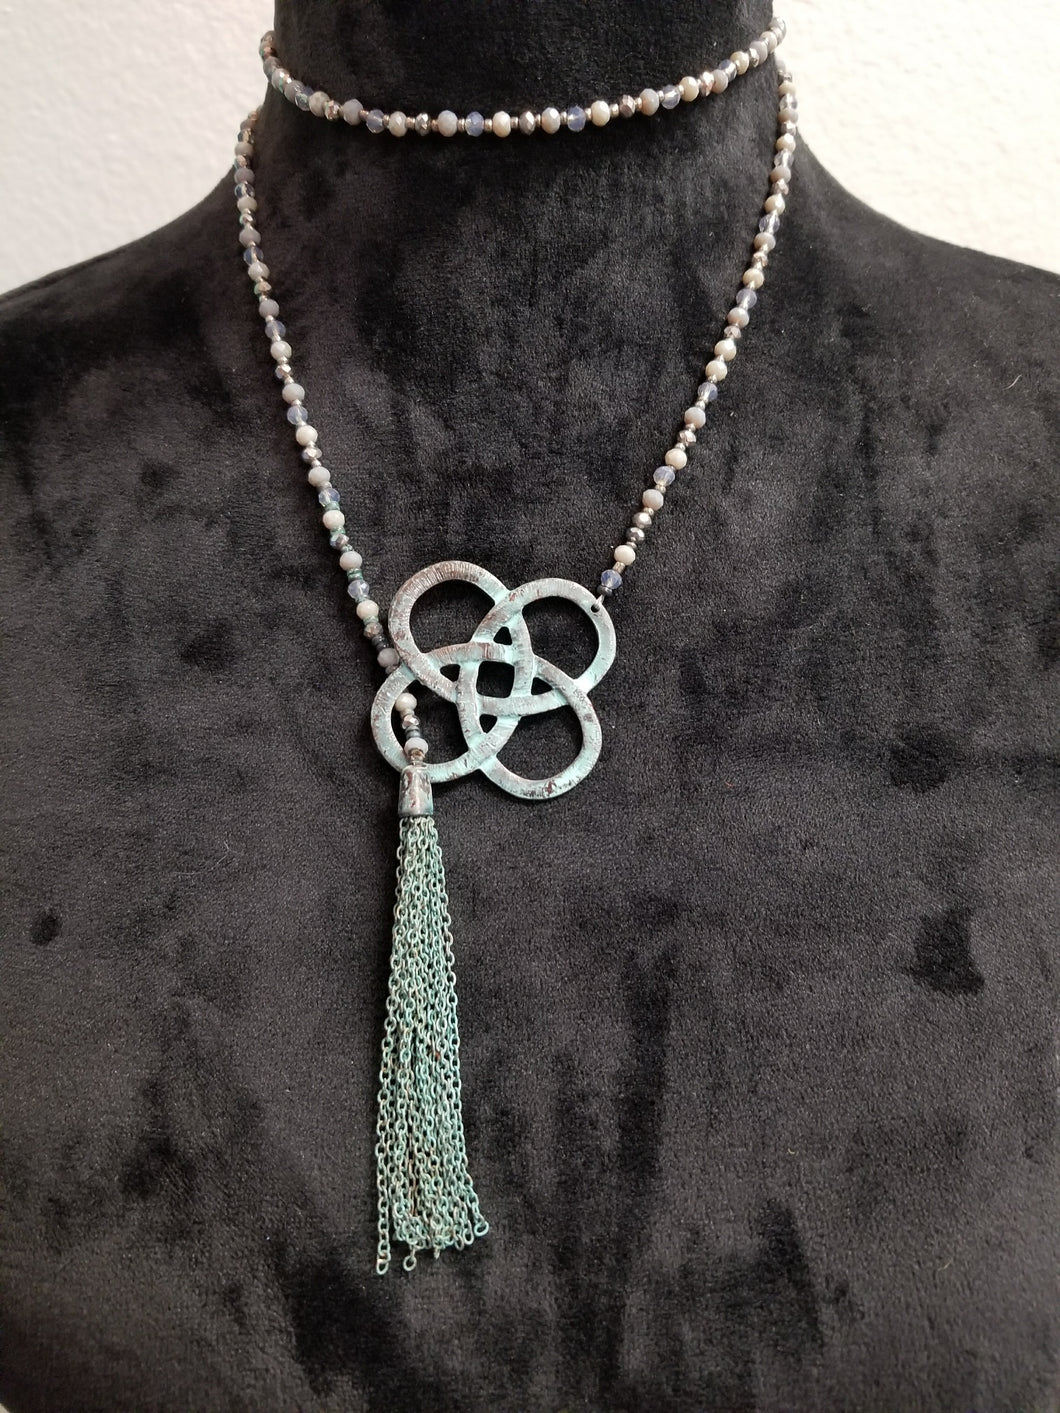 Beaded Chain W/ Turquoise Decor and Tassel